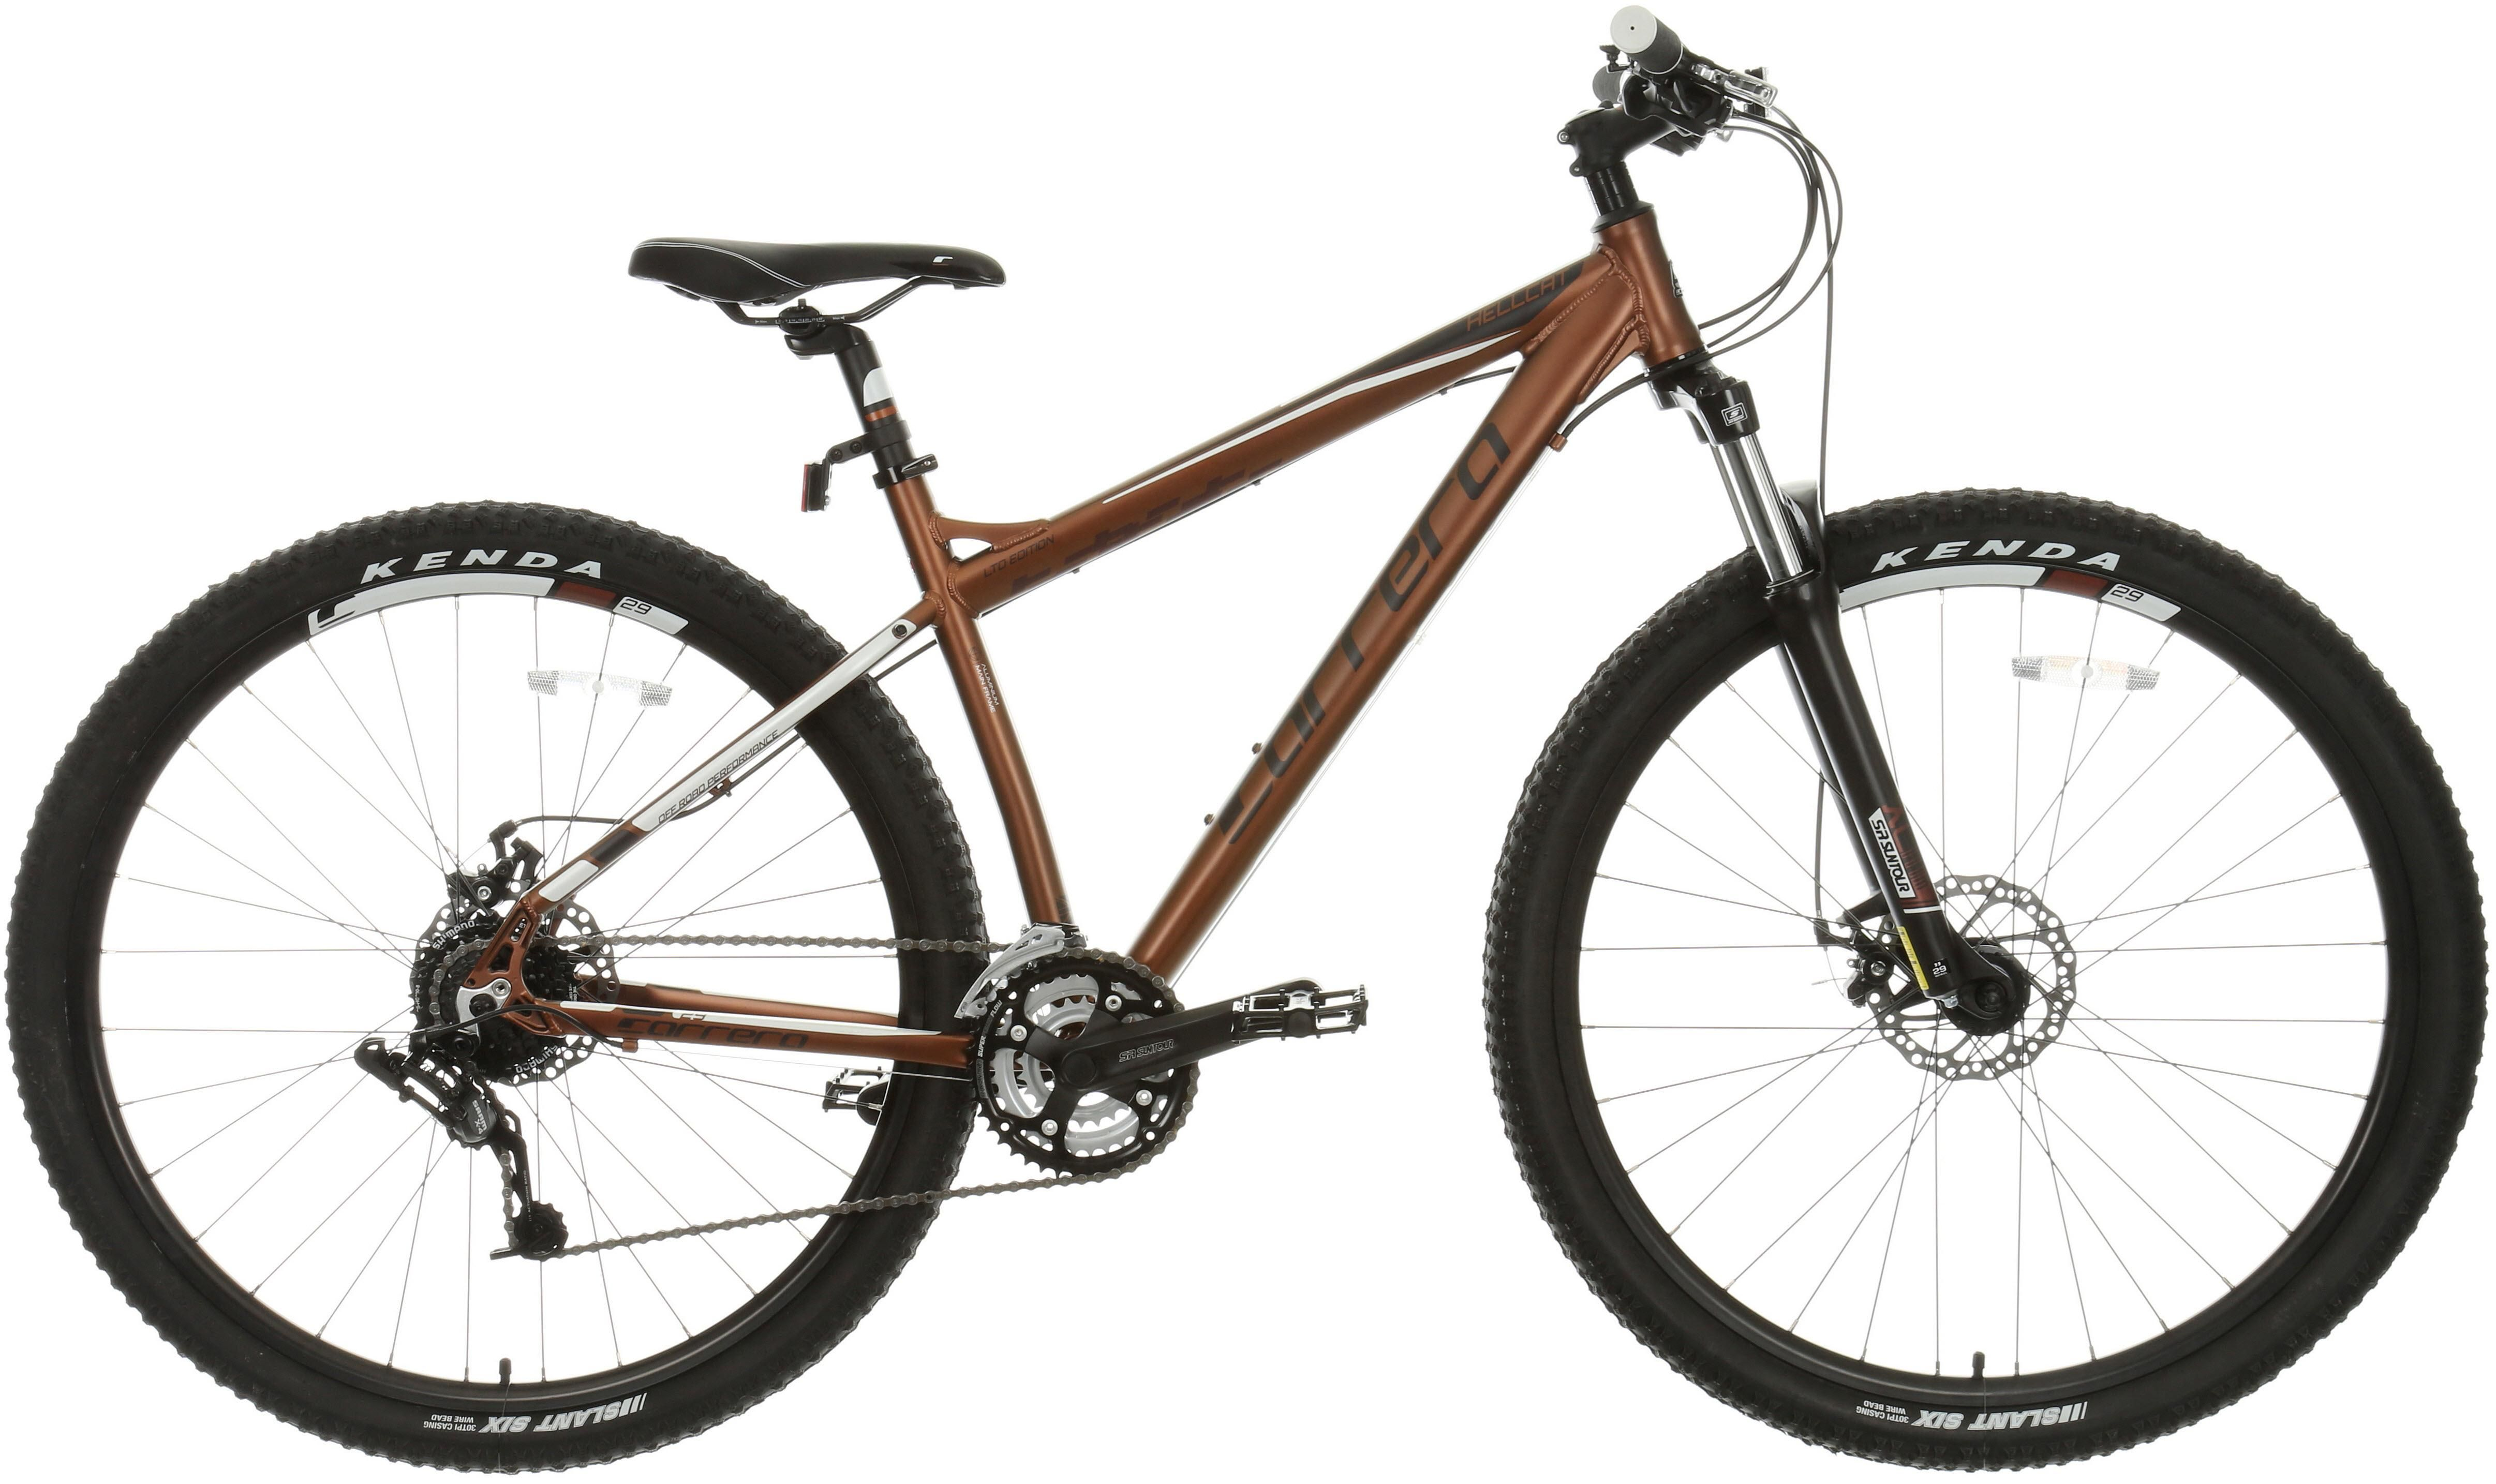 Carrera Hellcat Womens Mountain Bike - 16 inch, Bronze | Bicycle ...